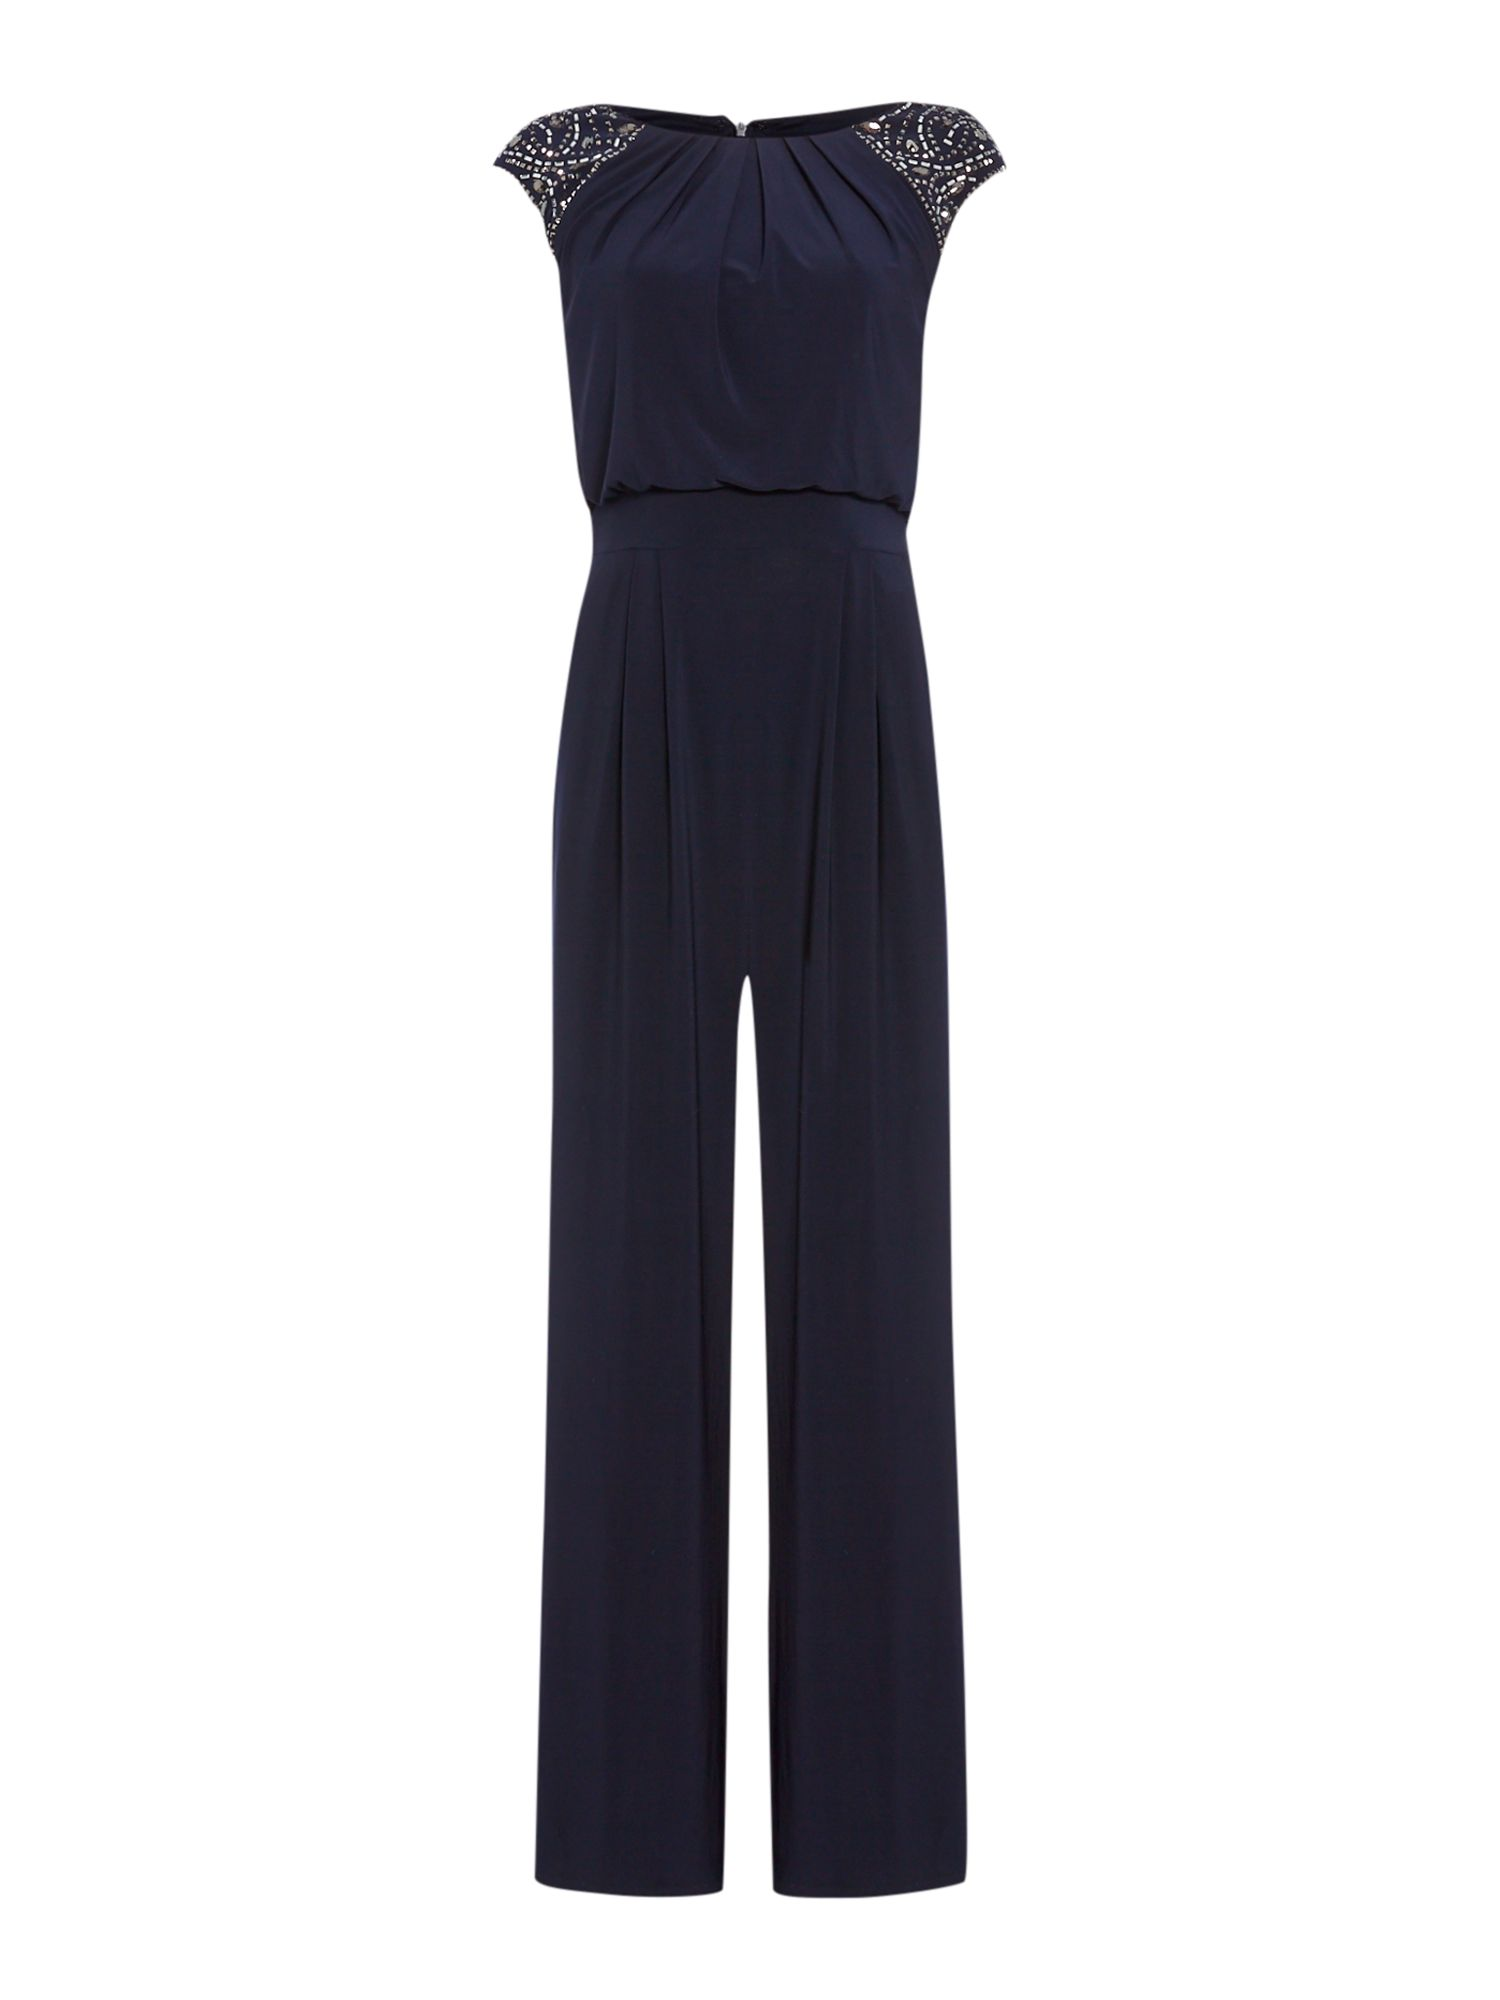 Eliza j Jumpsuit With Beaded